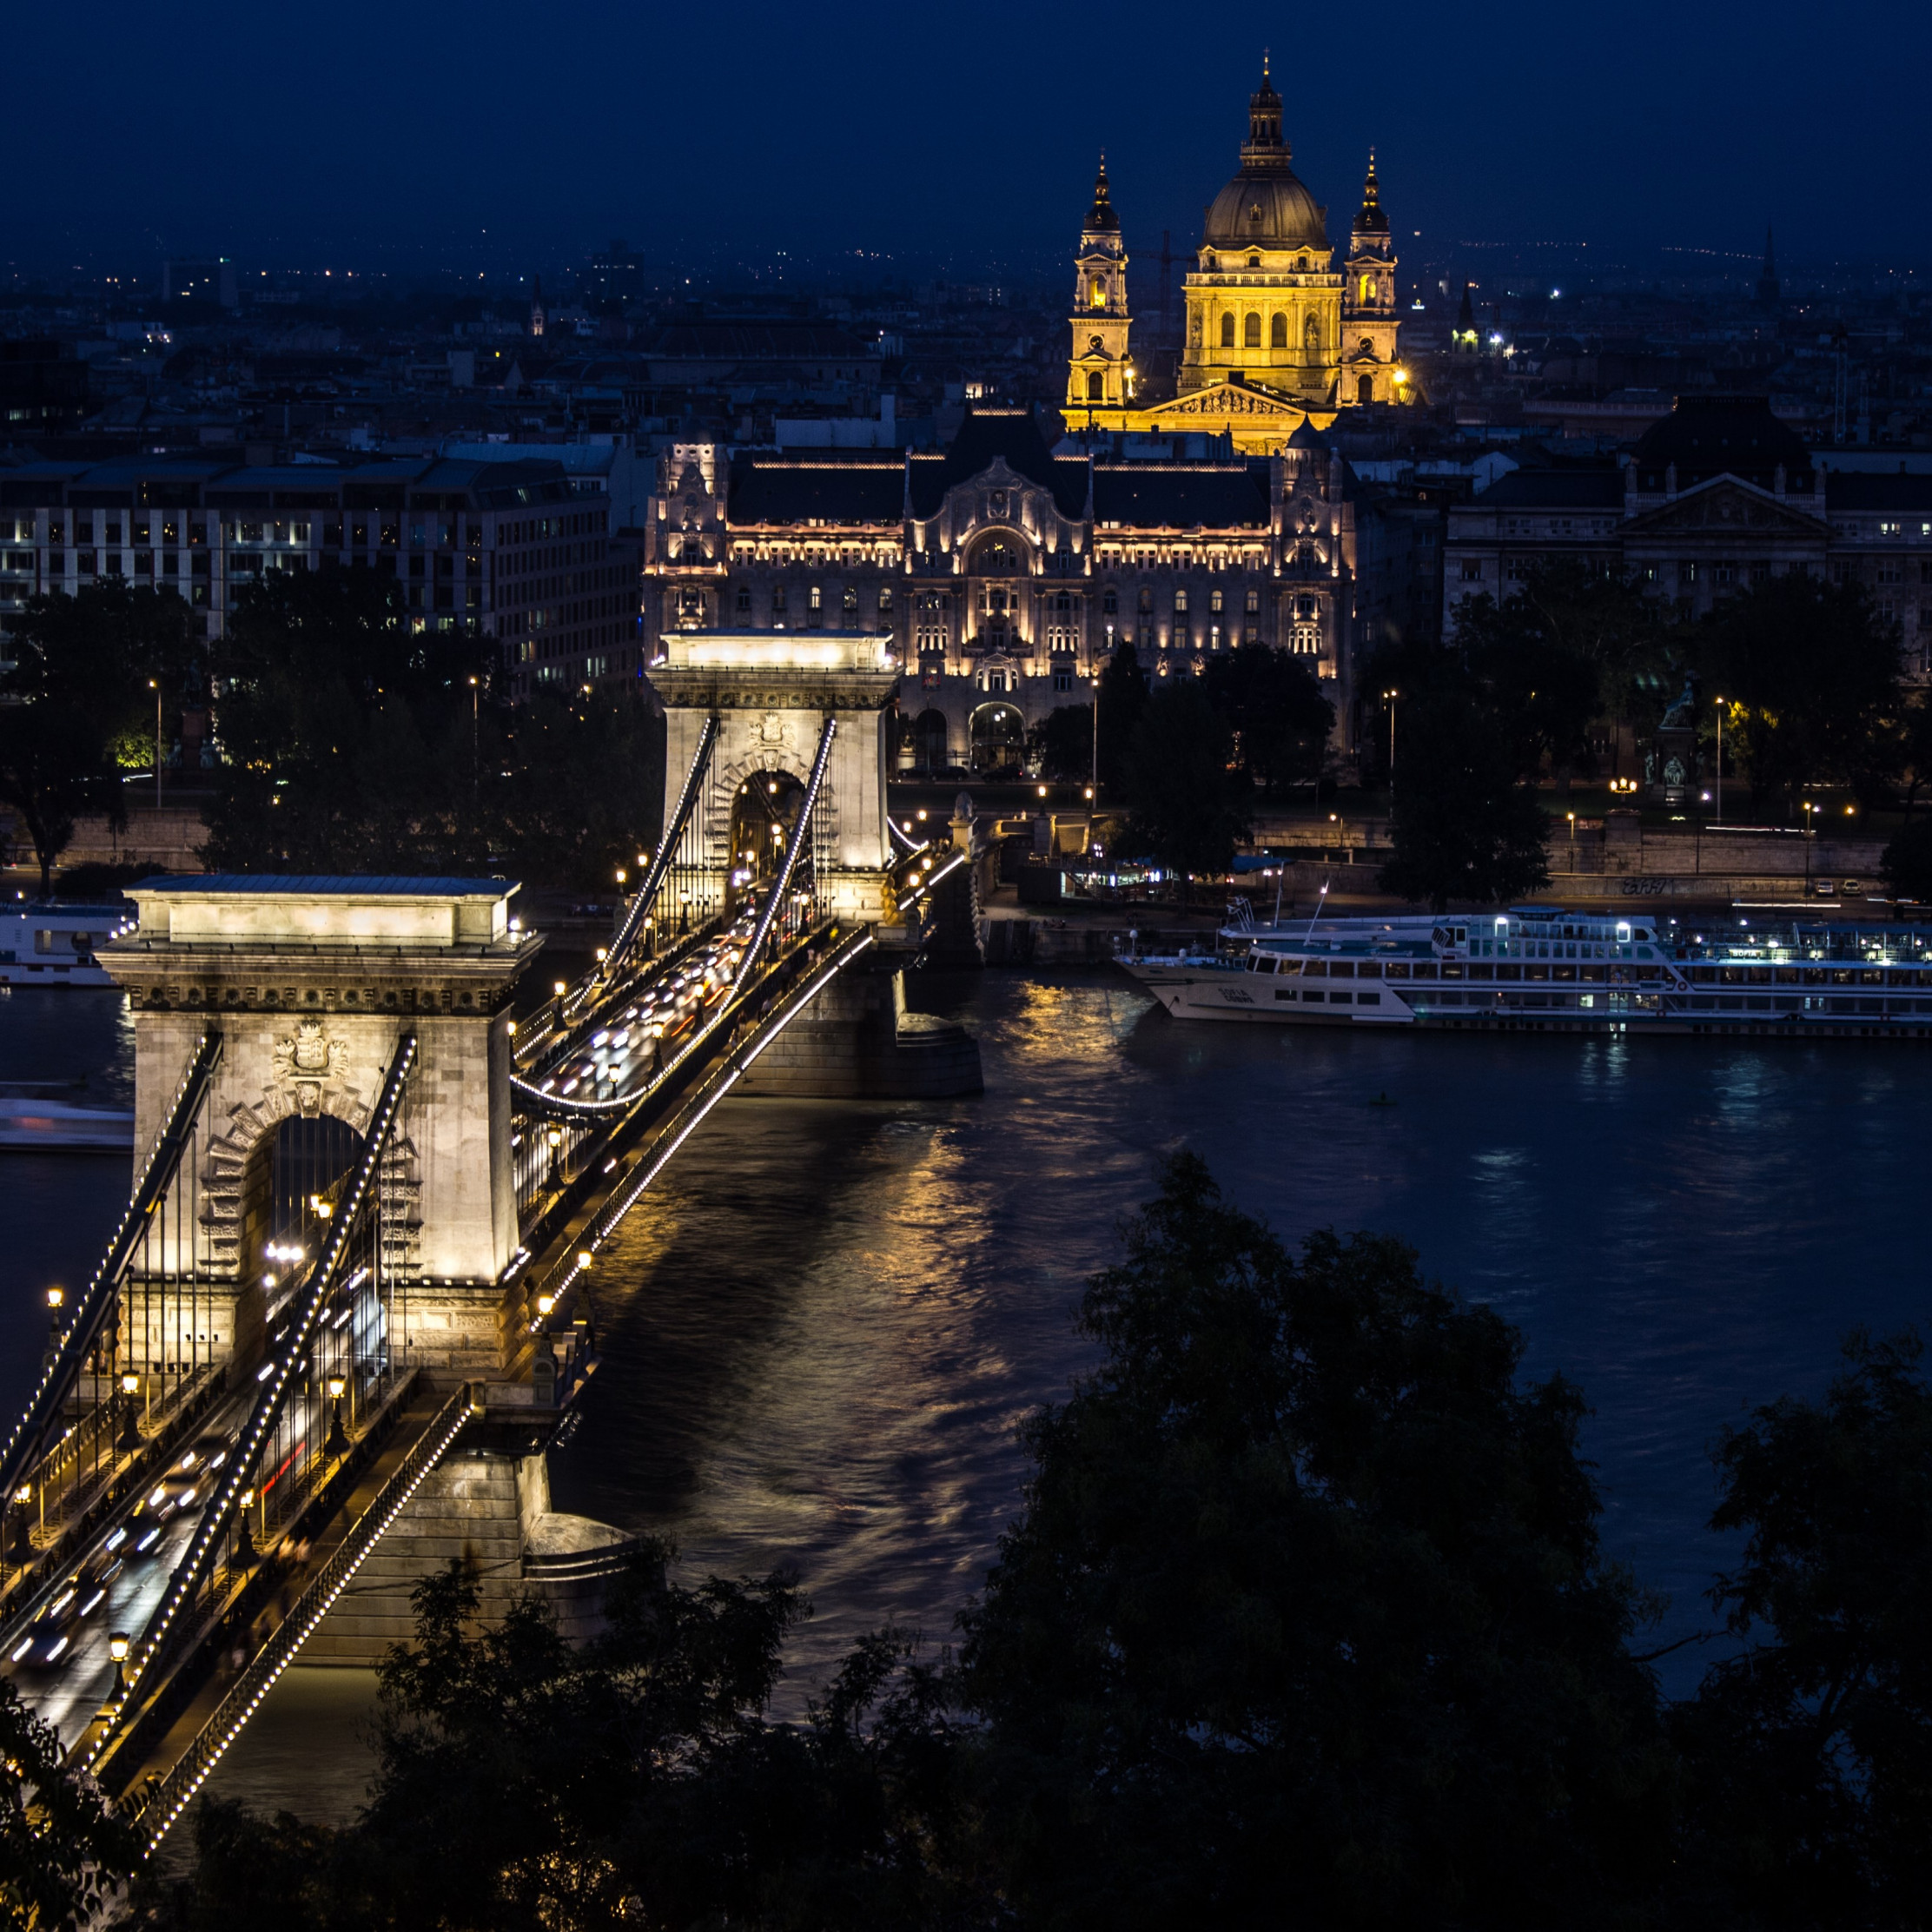 Budapest by Night wallpaper 2224x2224